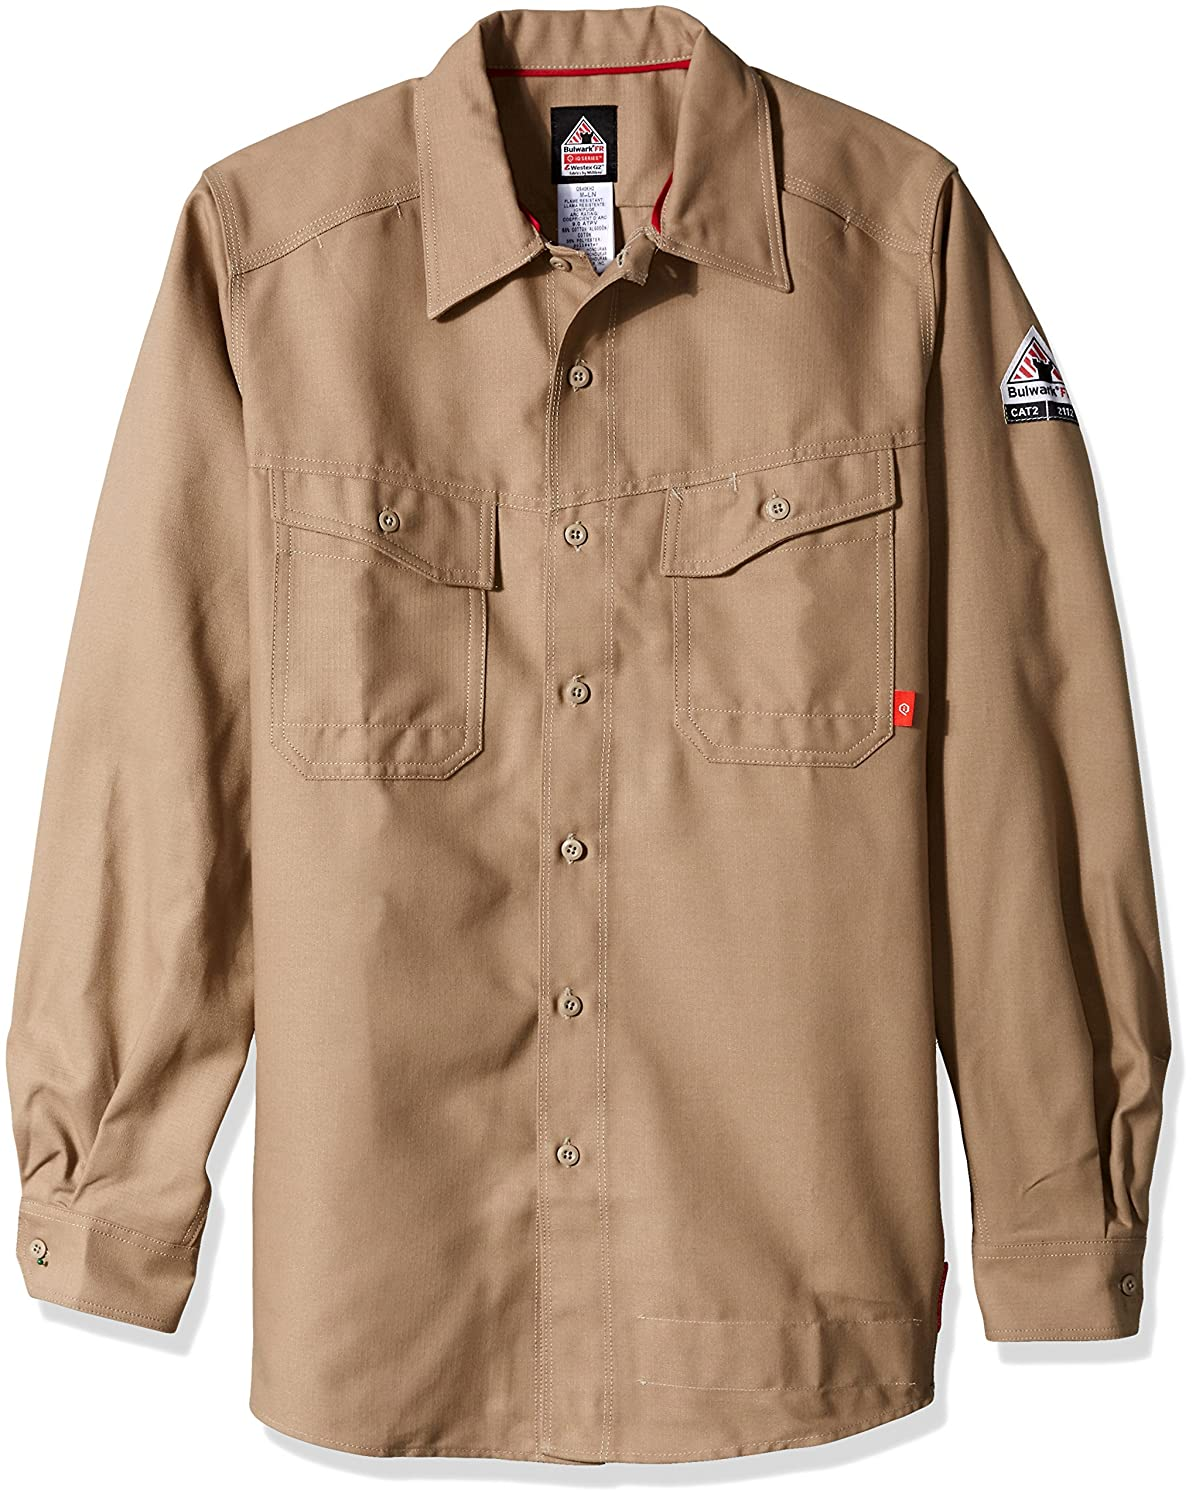 Bulwark FR SHIRT メンズ B071FHH8XQ XXXX-Large Tall|カーキ カーキ XXXX-Large Tall